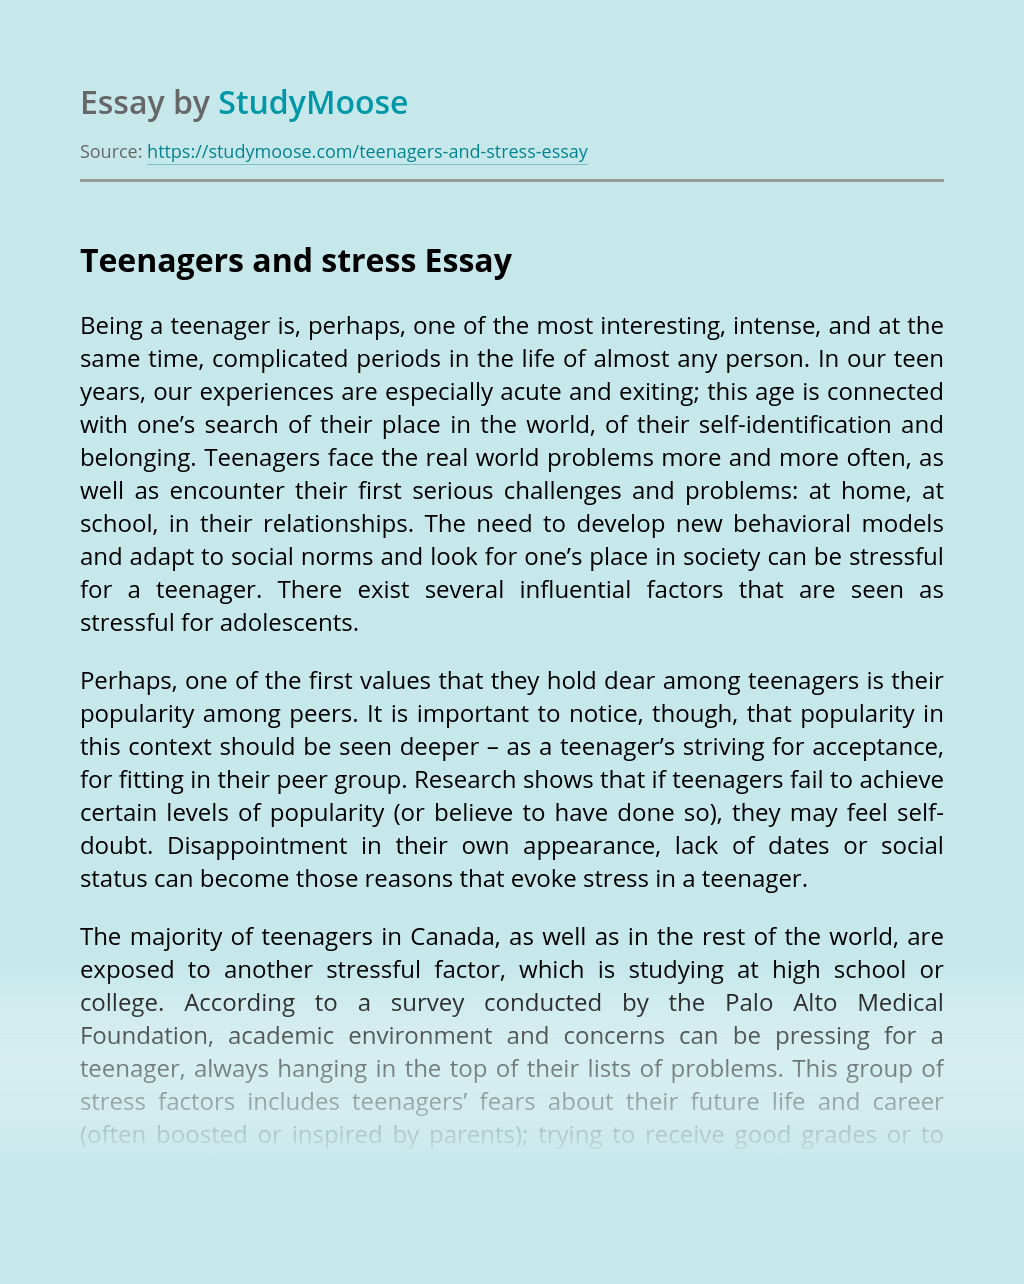 Teenagers and stress